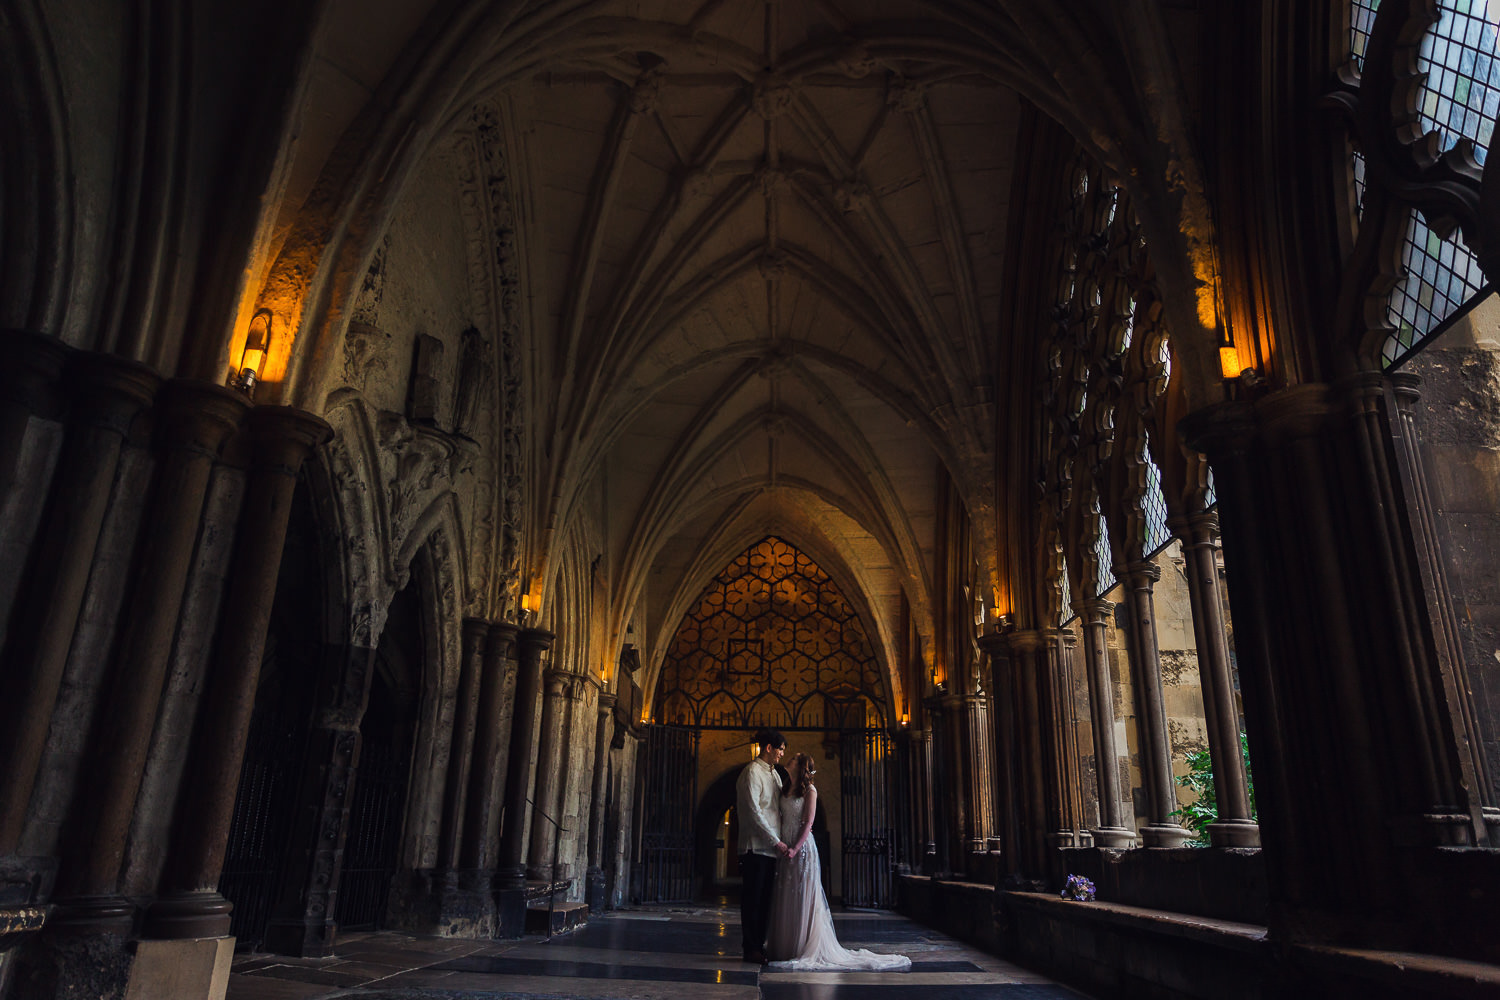 westminster-abbey-wedding-photography-image-cloisters